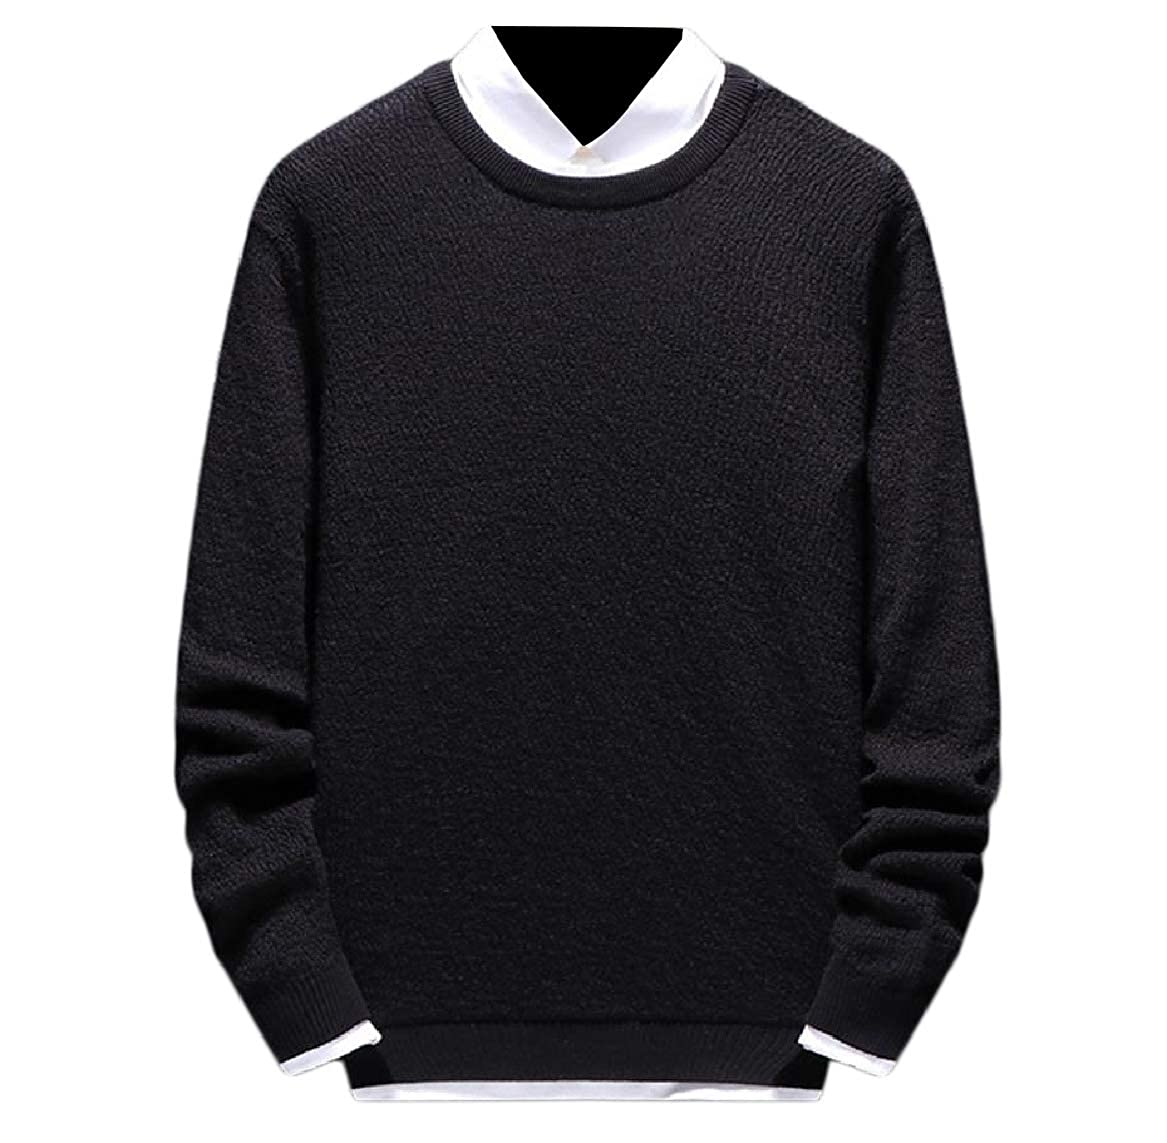 YUNY Men Knitwear Knitting Fall Soft Comfort Fitted Sweater Jumper Black L